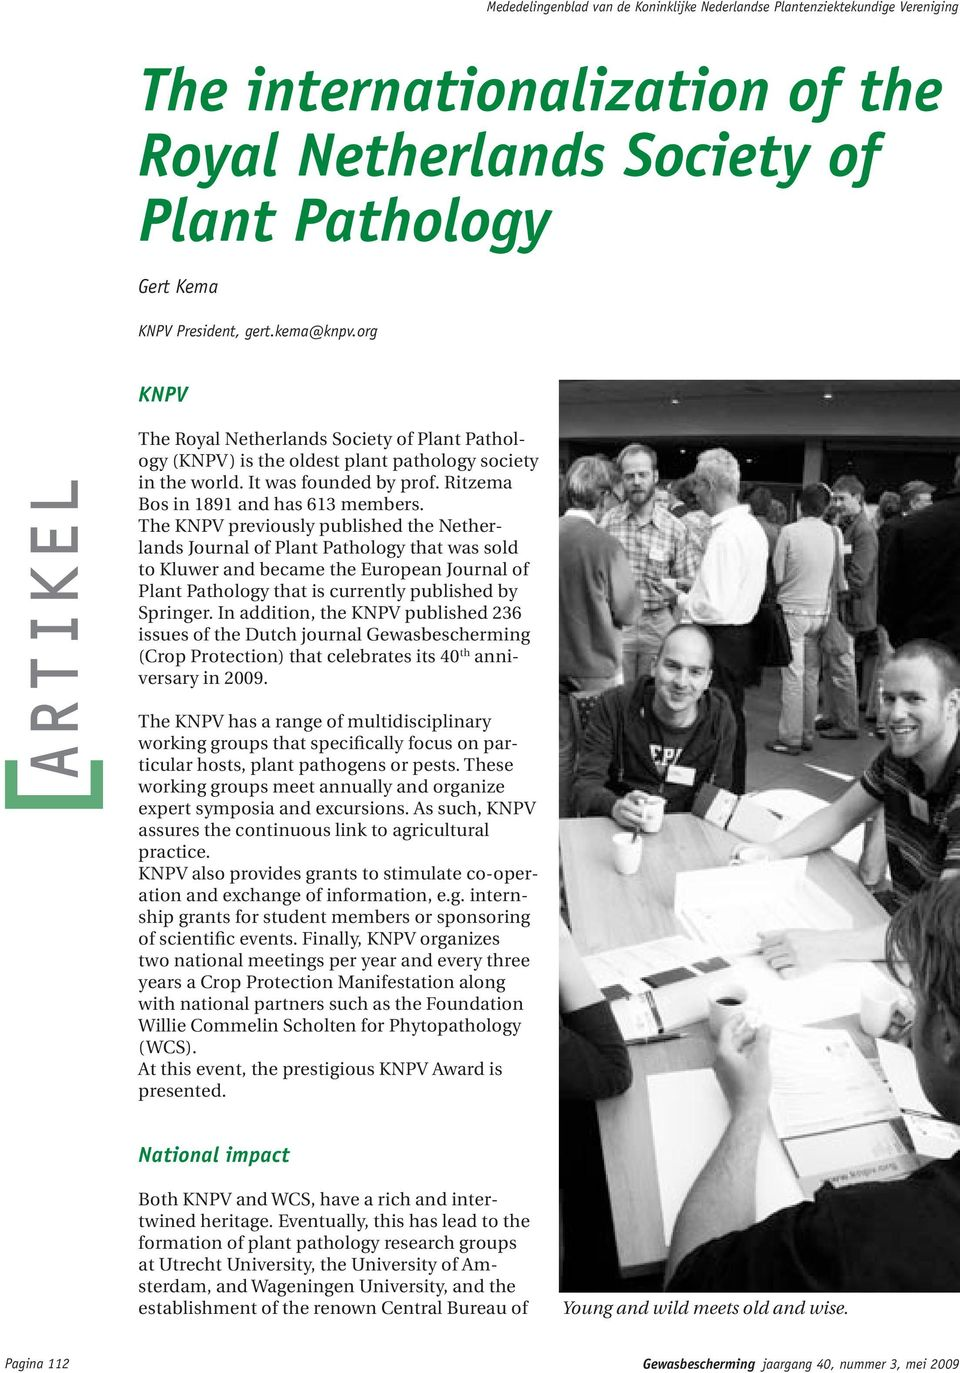 The KNPV previously published the Netherlands Journal of Plant Pathology that was sold to Kluwer and became the European Journal of Plant Pathology that is currently published by Springer.